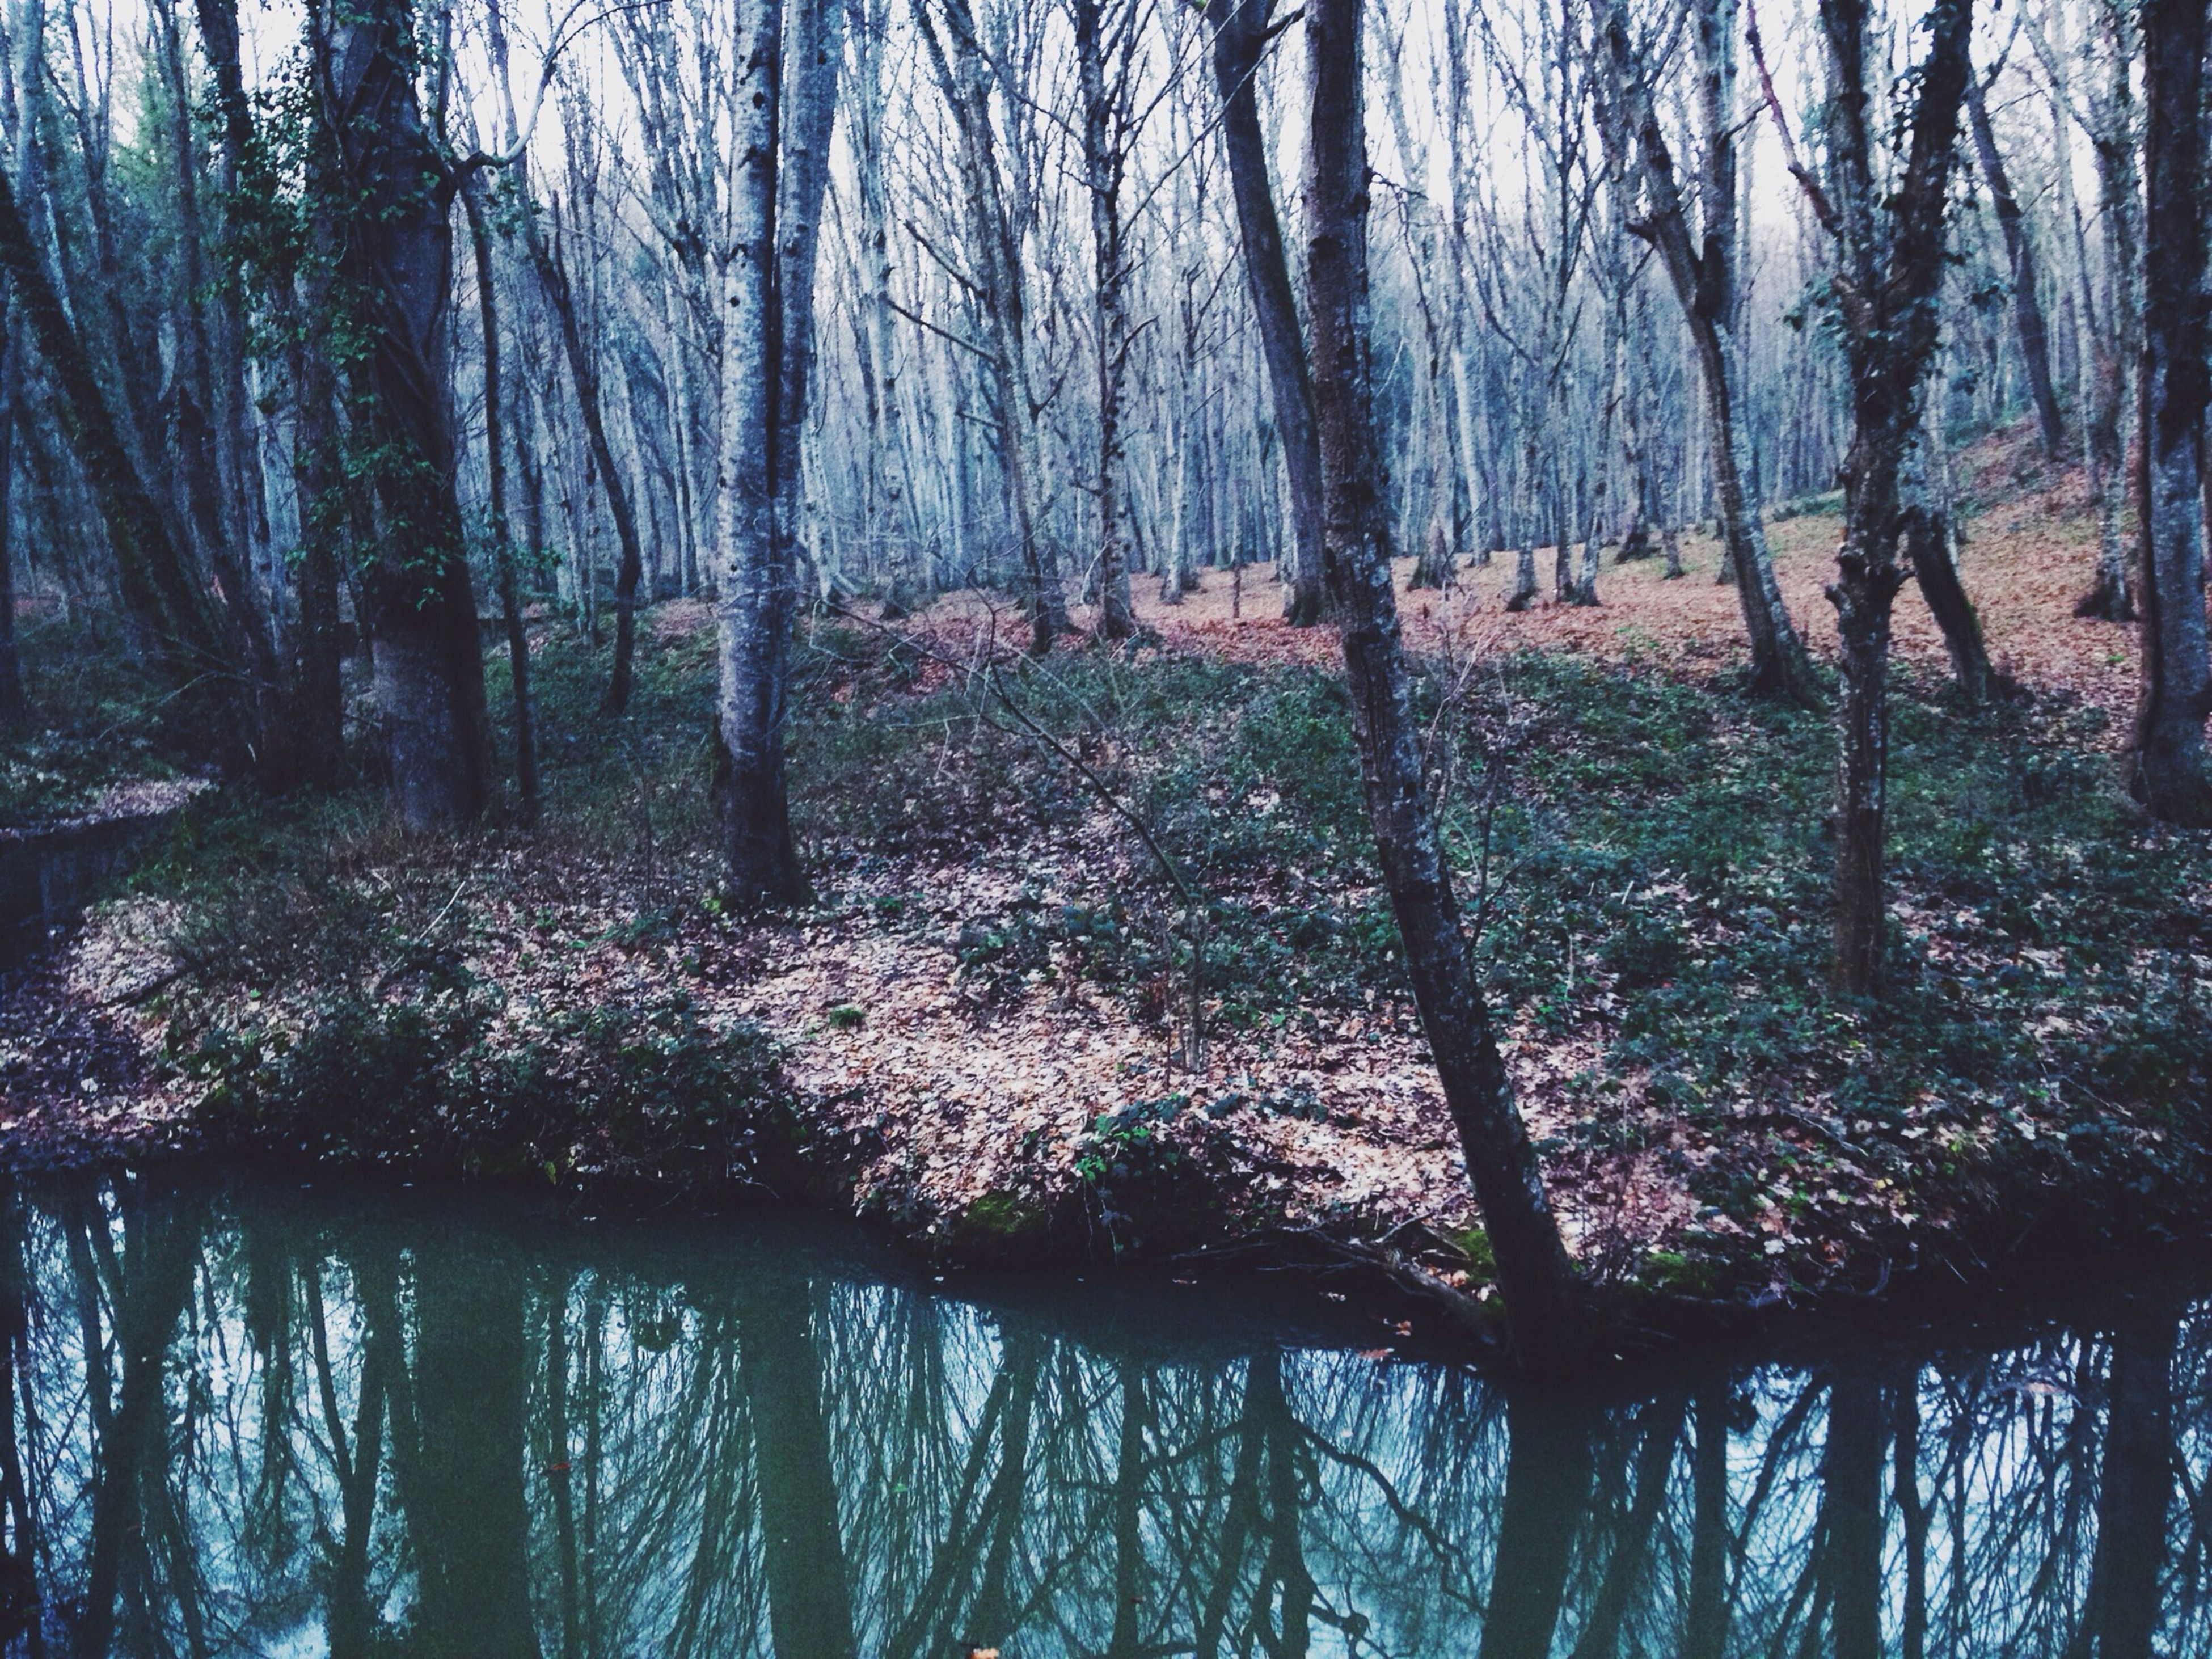 tree, water, tranquility, tranquil scene, reflection, lake, branch, tree trunk, beauty in nature, scenics, nature, forest, growth, bare tree, idyllic, waterfront, woodland, river, non-urban scene, outdoors